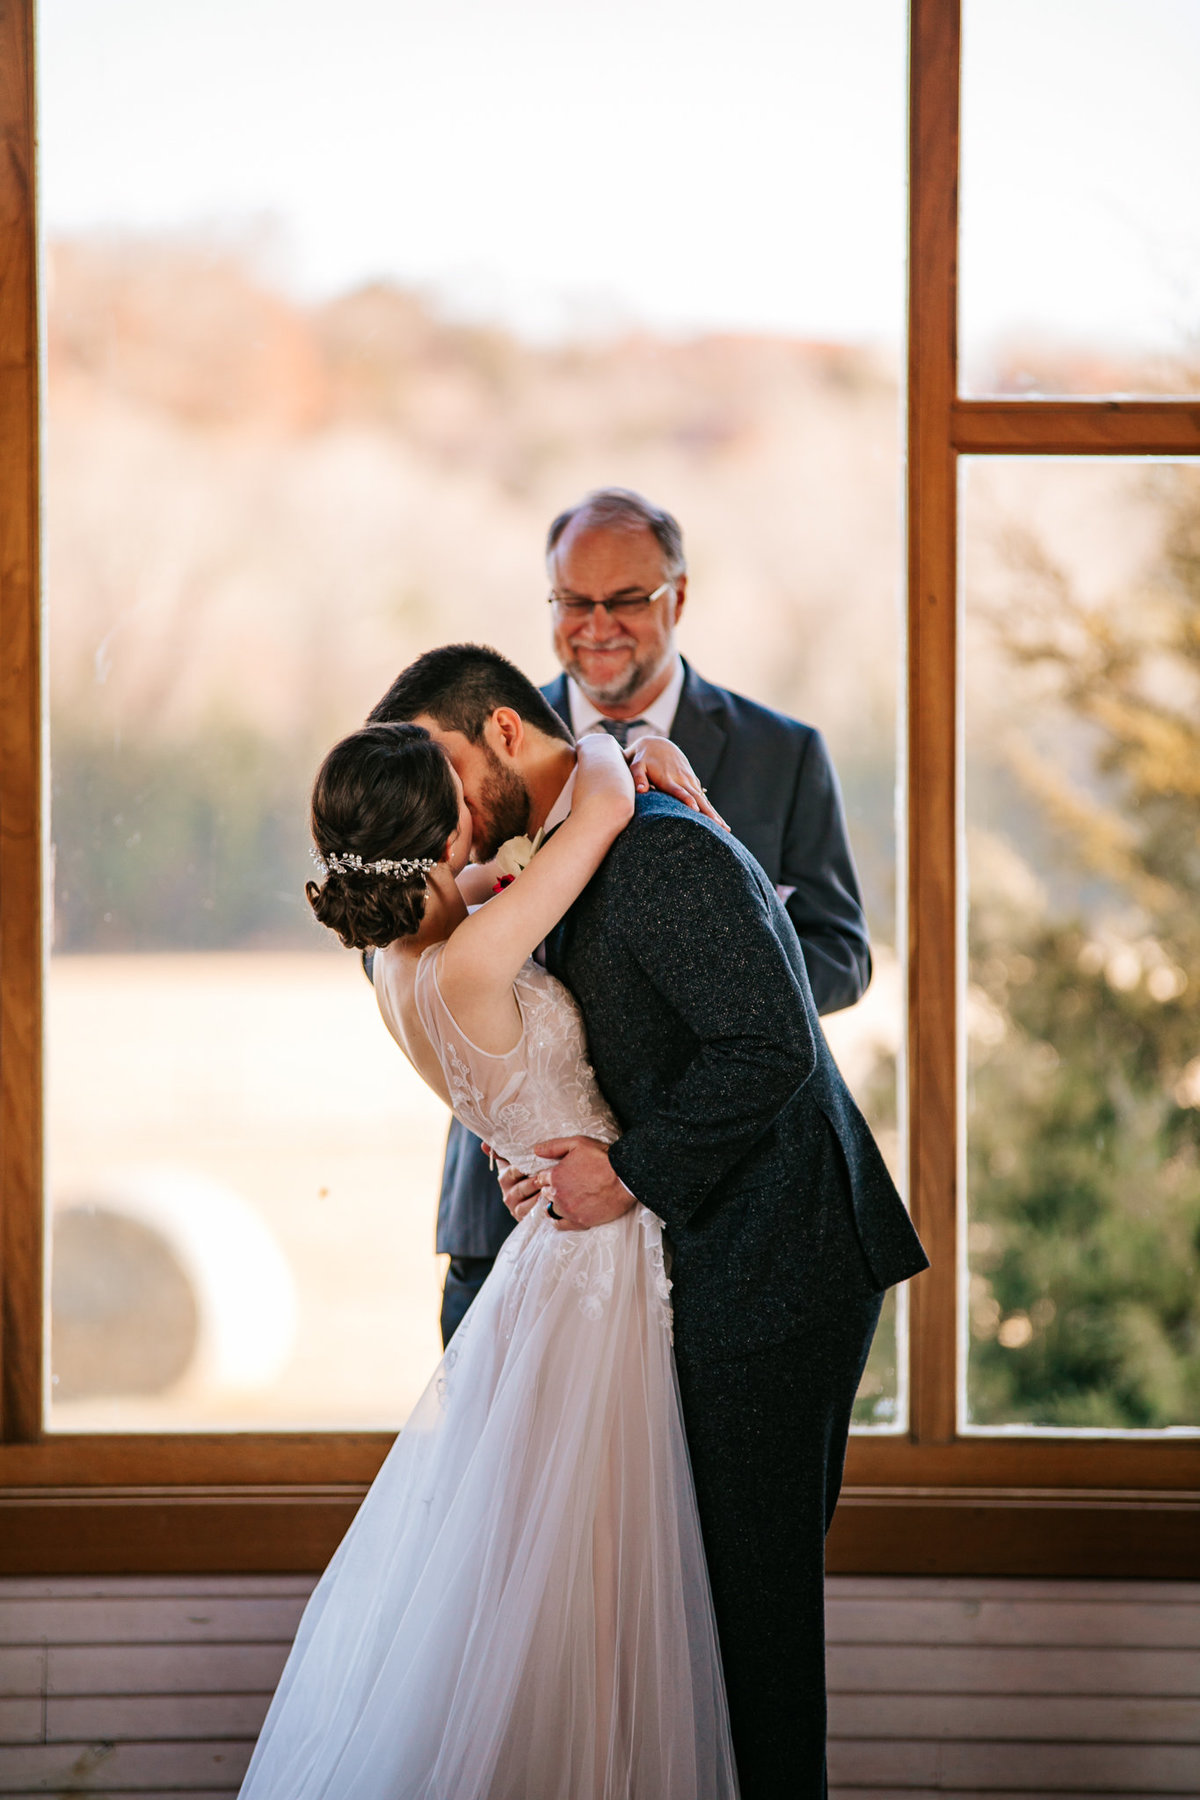 madeline_c_photography_dallas_wedding_photographer_megan_connor-70